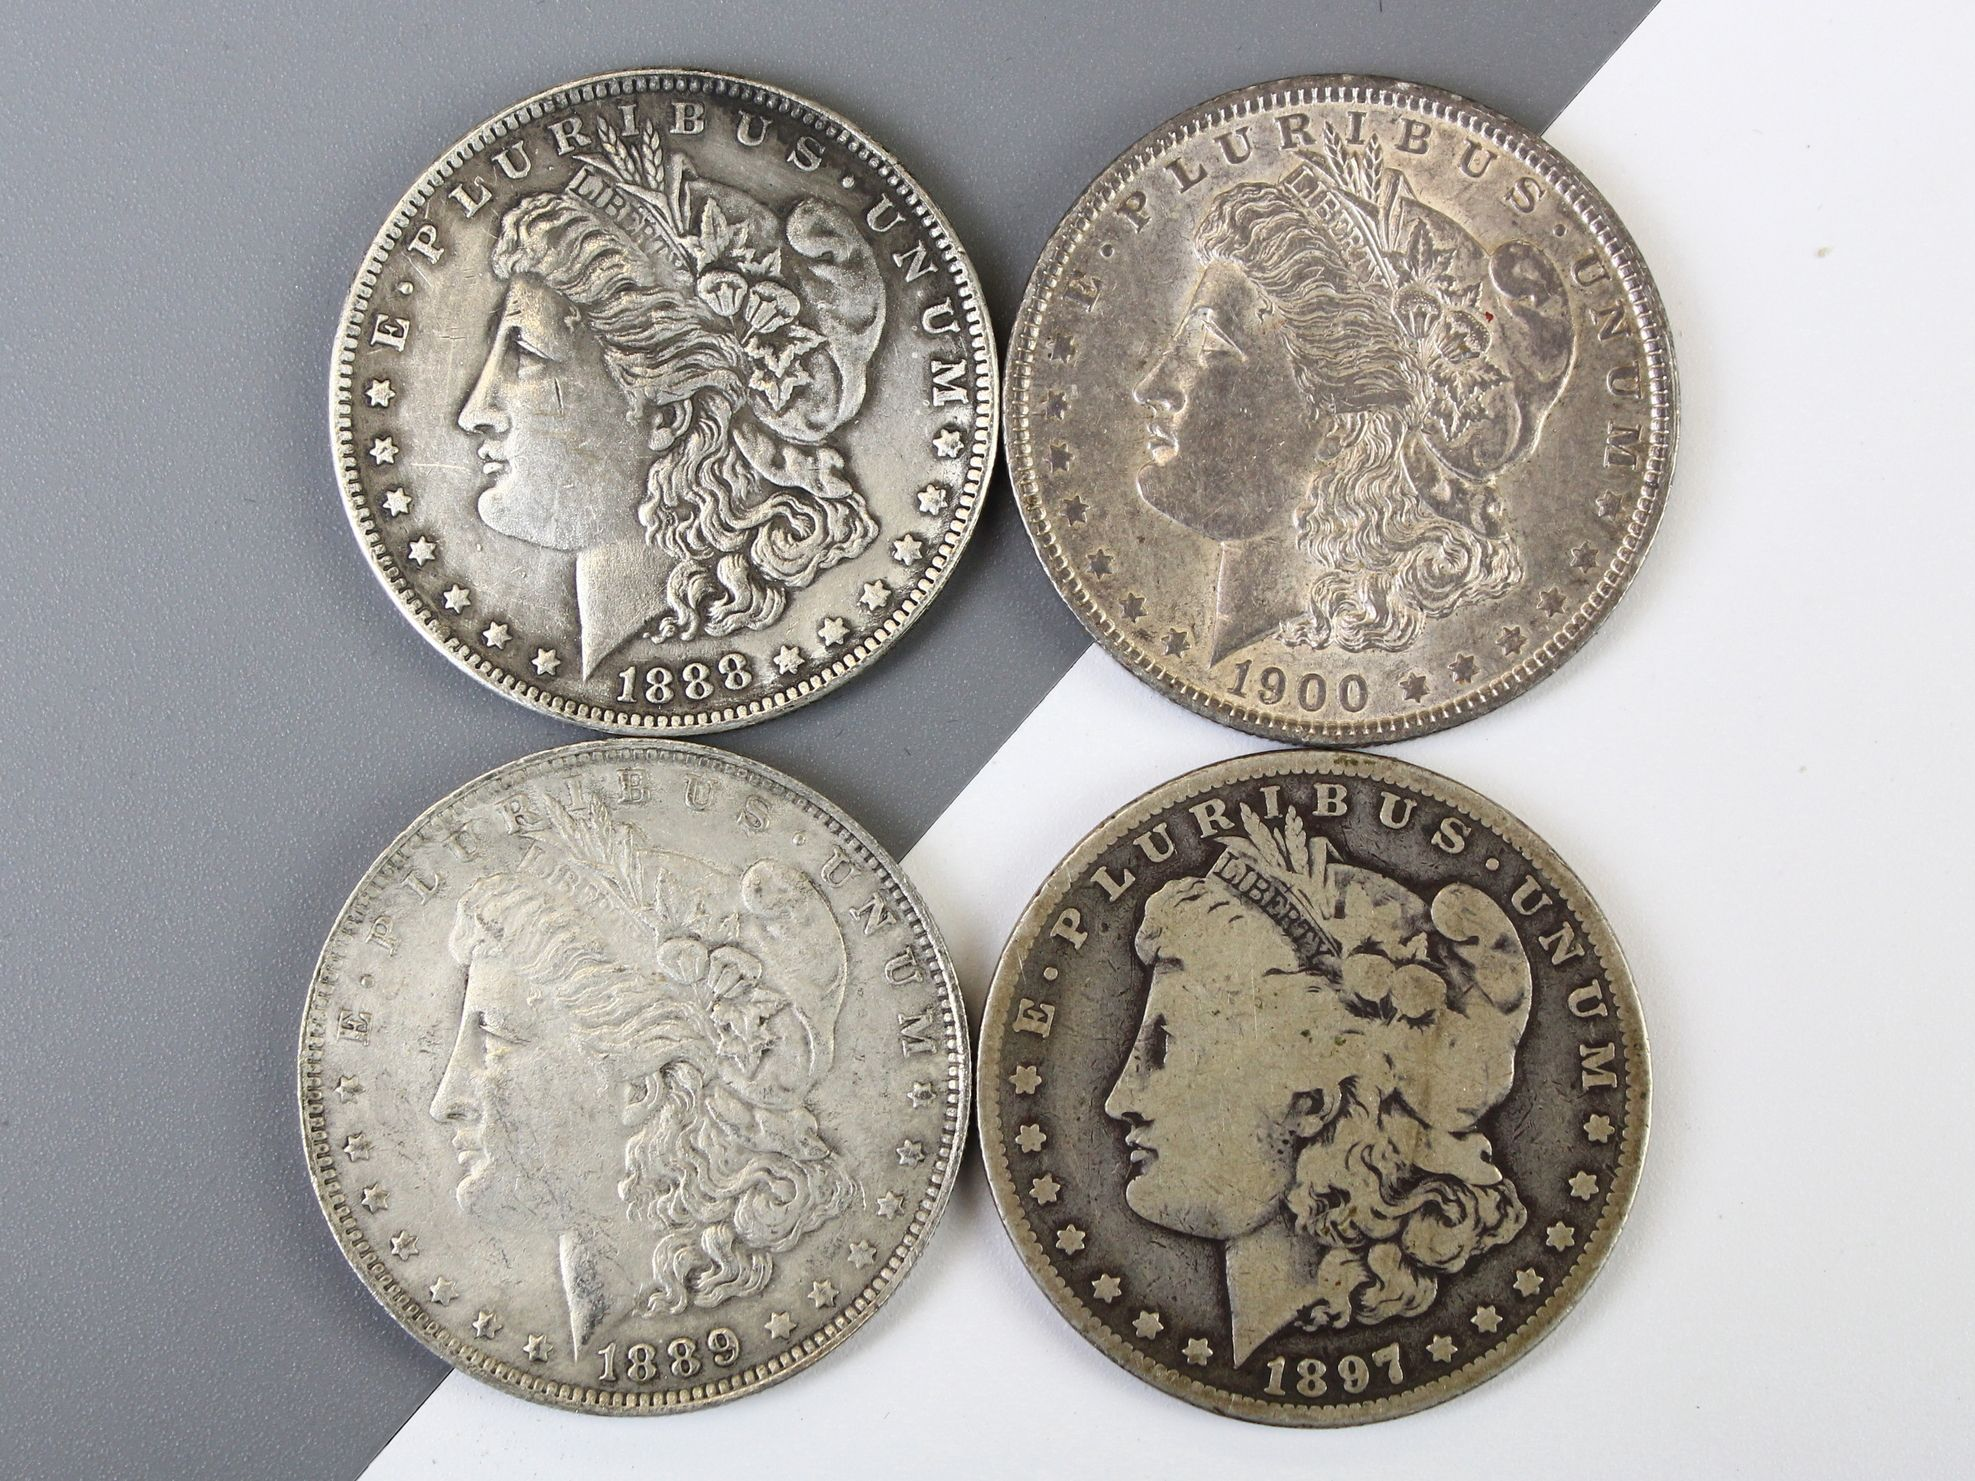 Don T Be Fooled By Fakes Propertyroom Com Has You Covered On How To Tell The Difference Between Real And Fake Morg Morgan Silver Dollar Coin Worth Rare Coins